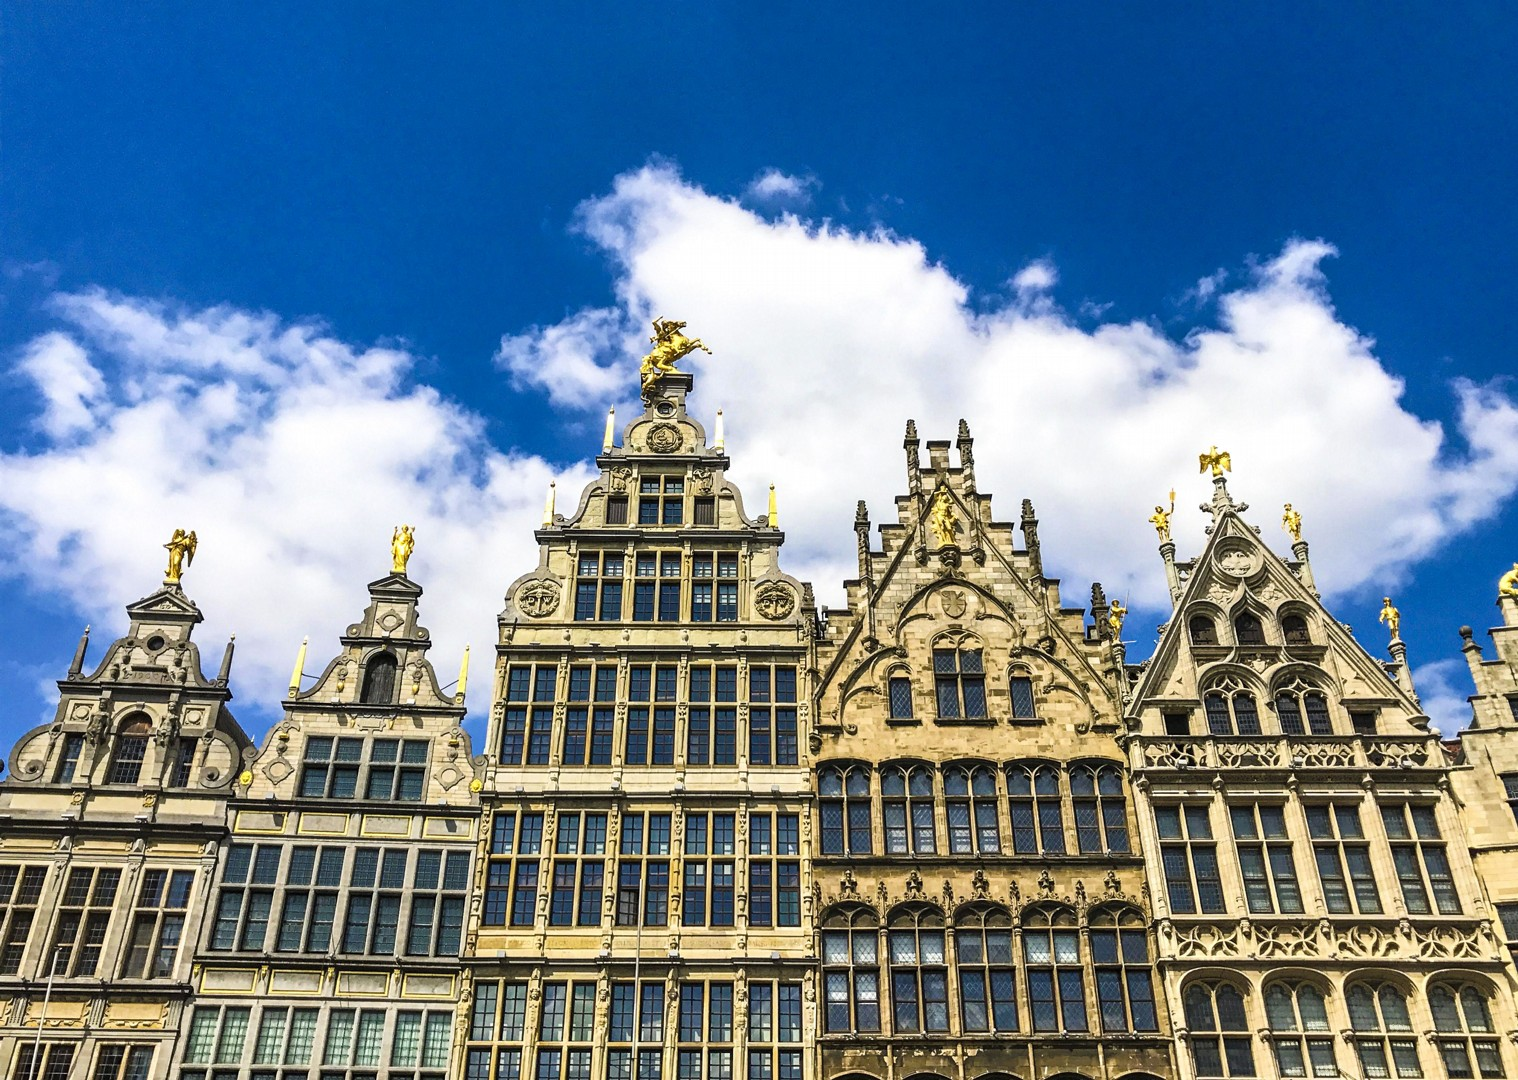 grote-markt-antwerp-belgium-visit-by-bike-and-barge.jpg - Holland and Belgium - Bruges to Amsterdam - Premium Bike and Barge Holiday - Leisure Cycling